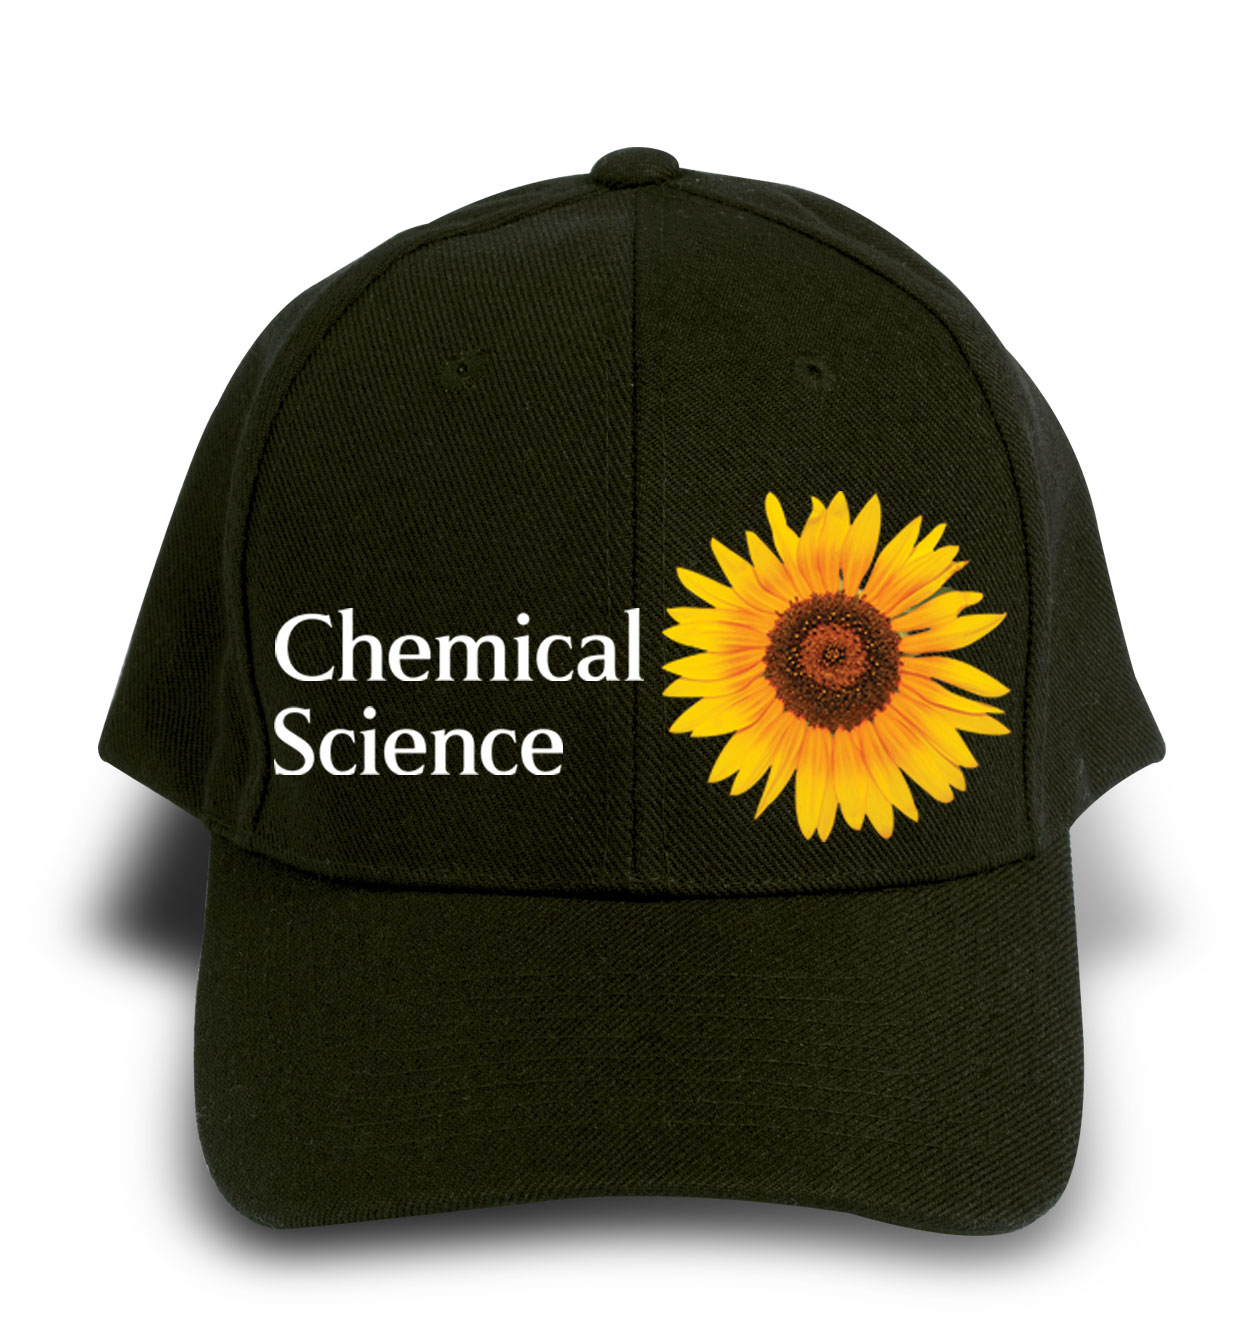 Chemical Science baseball hat